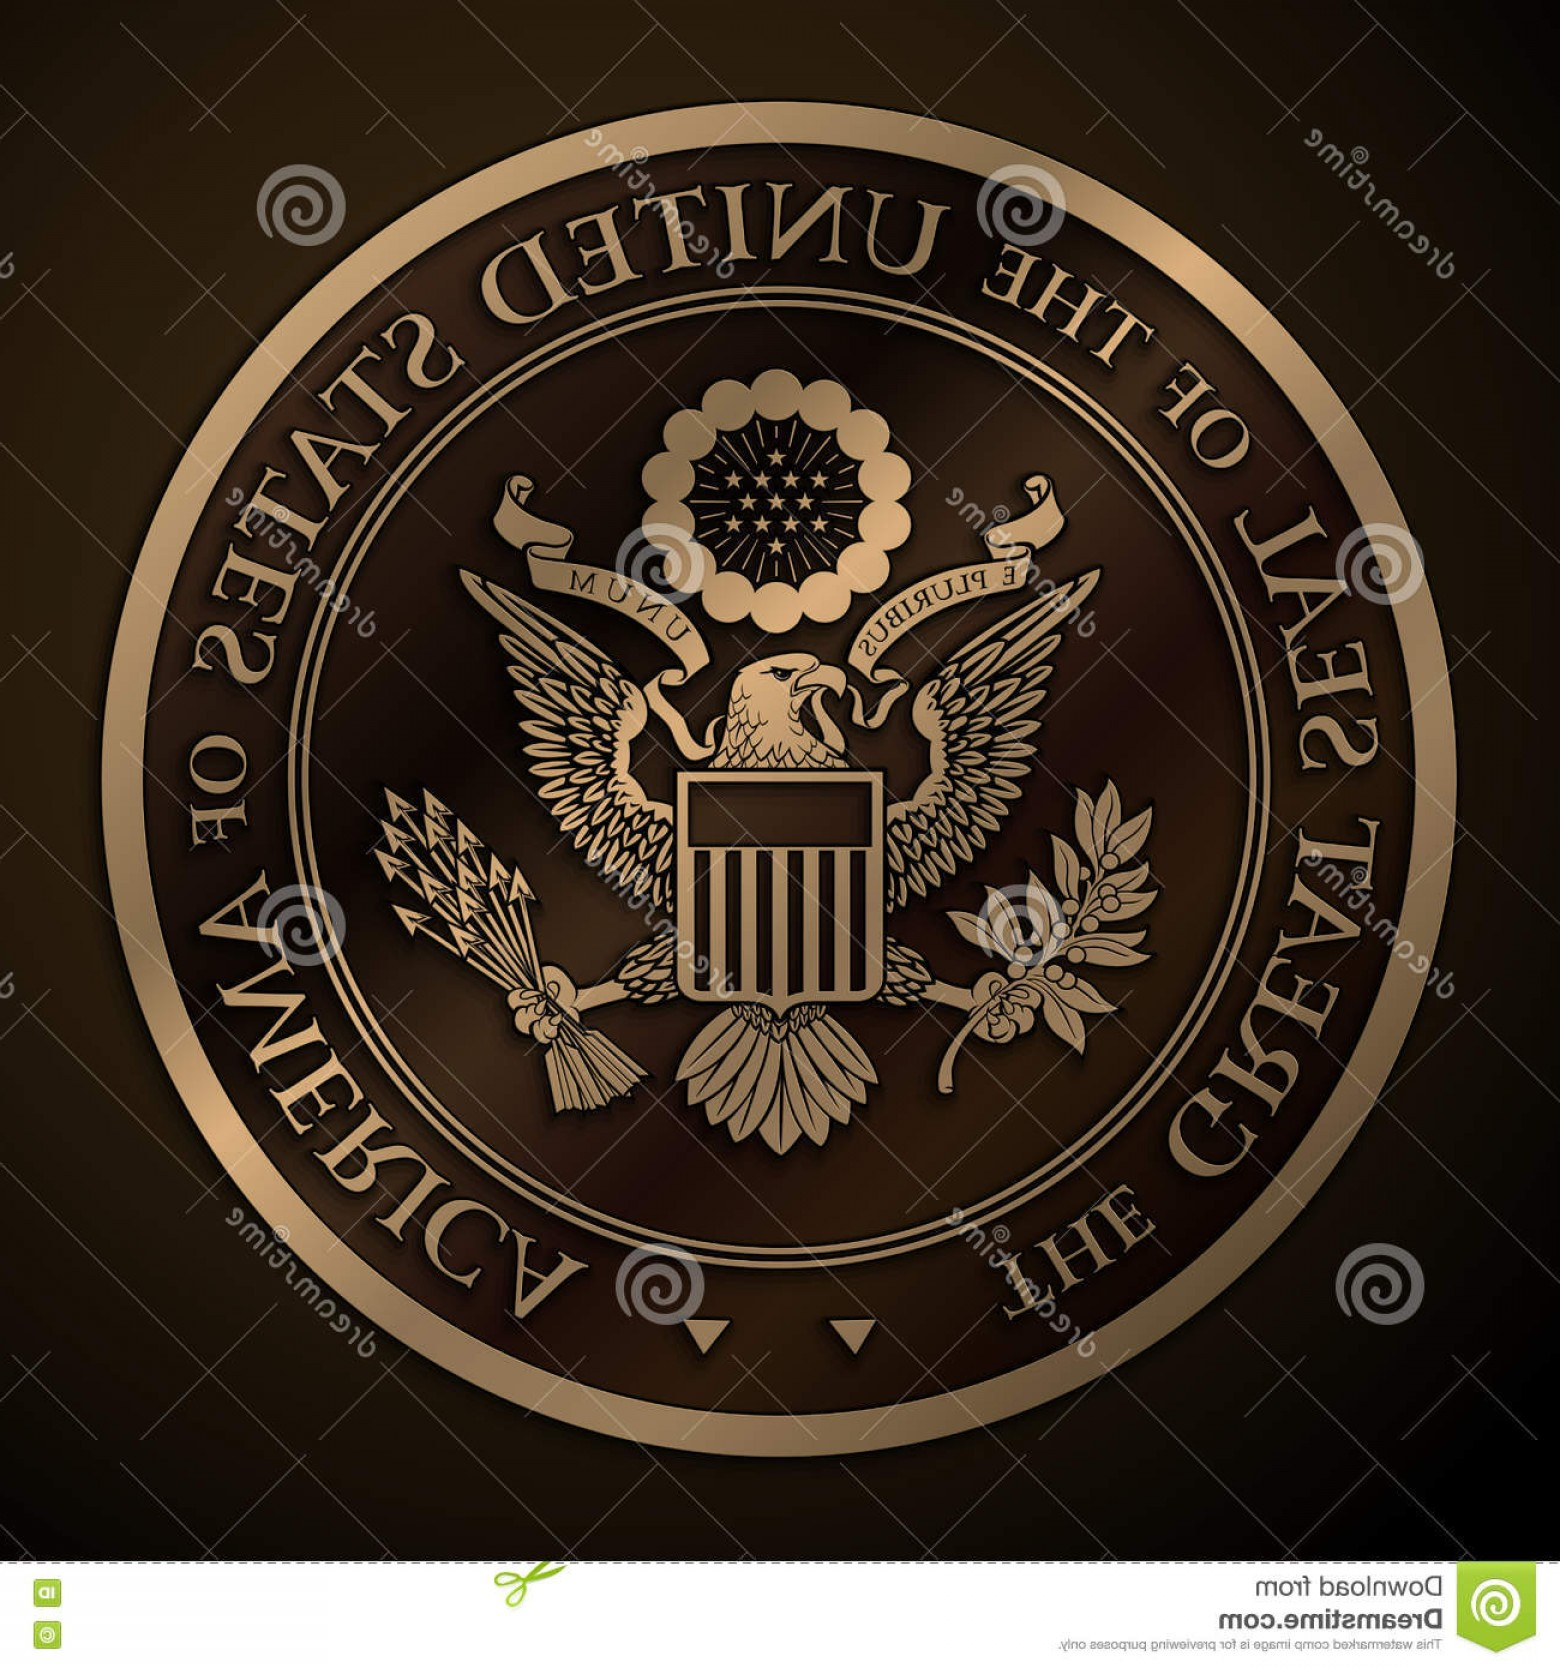 California Seal Vector EPS: Stock Illustration Great Seal Us Gold Highly Detailed Vector Design Monochromatic Embossed Official United States Eps Mpxl Q Jpeg Image